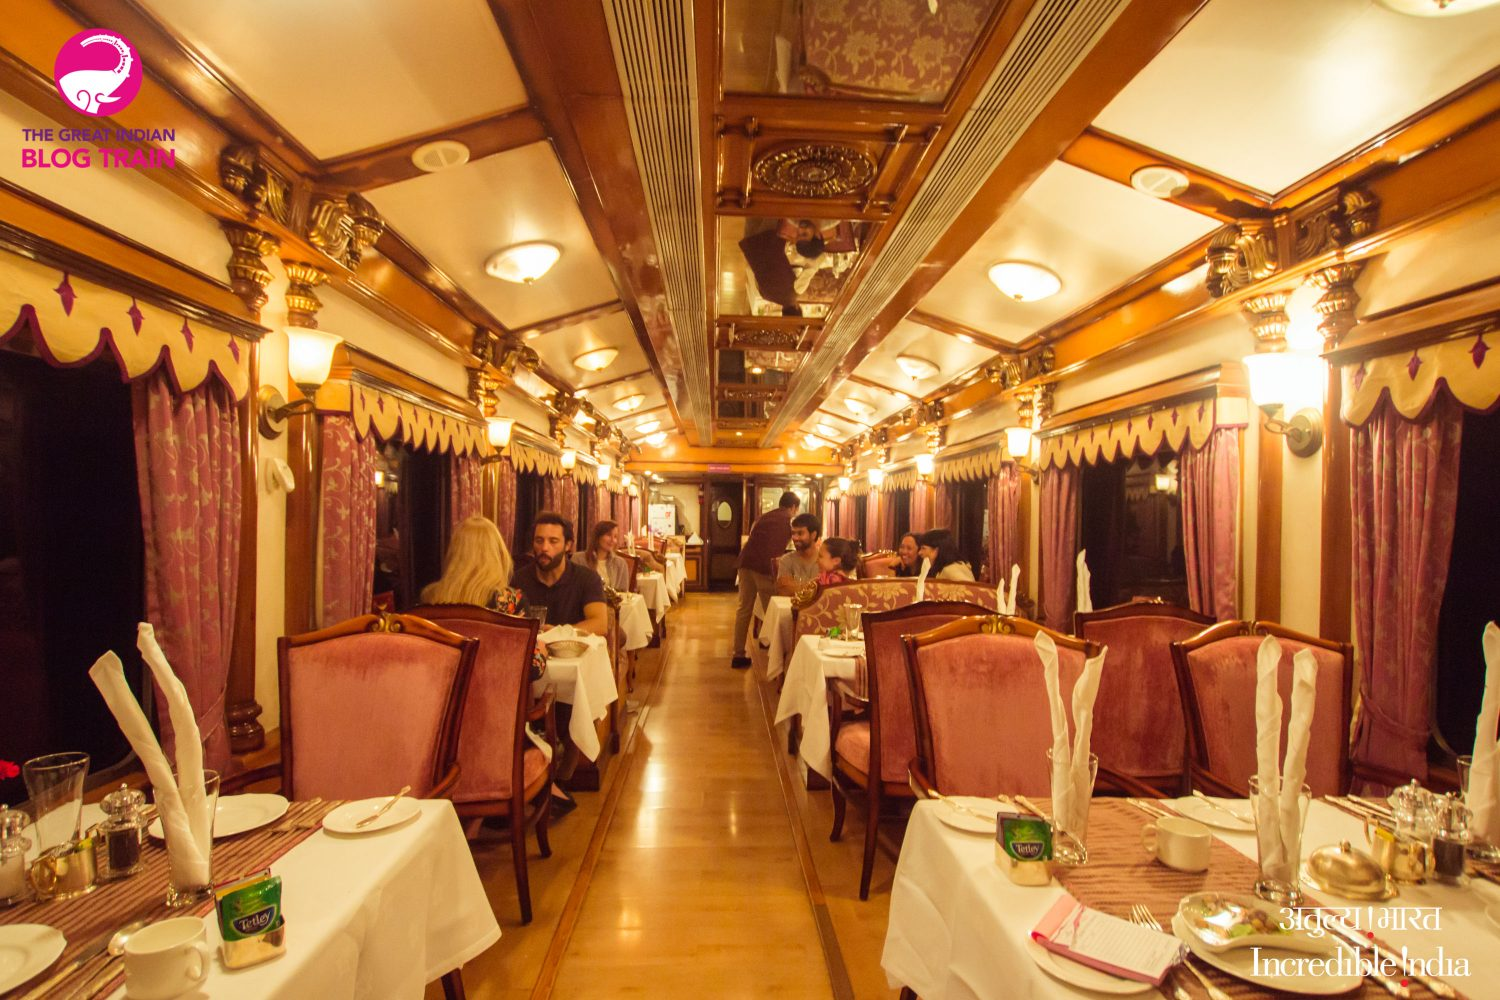 An insider peek into life on board the Golden Chariot, one of India's top luxury trains. #TrainTravel #India #LuxuryTravel